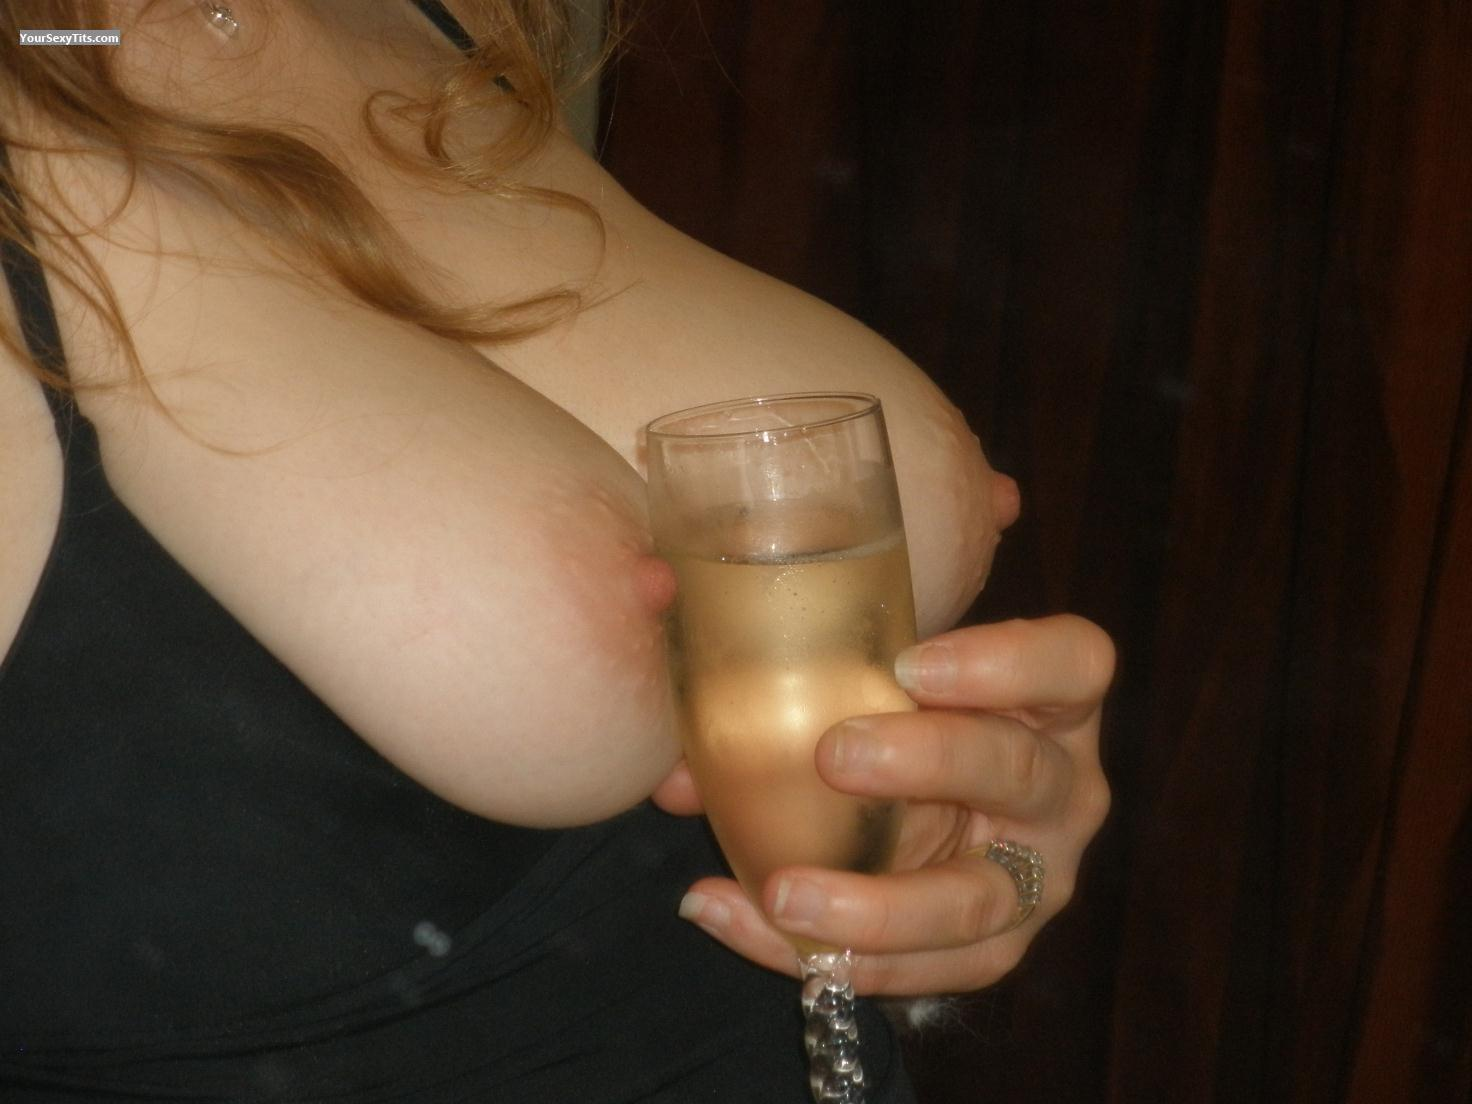 Medium Tits FirstTimeFlasher